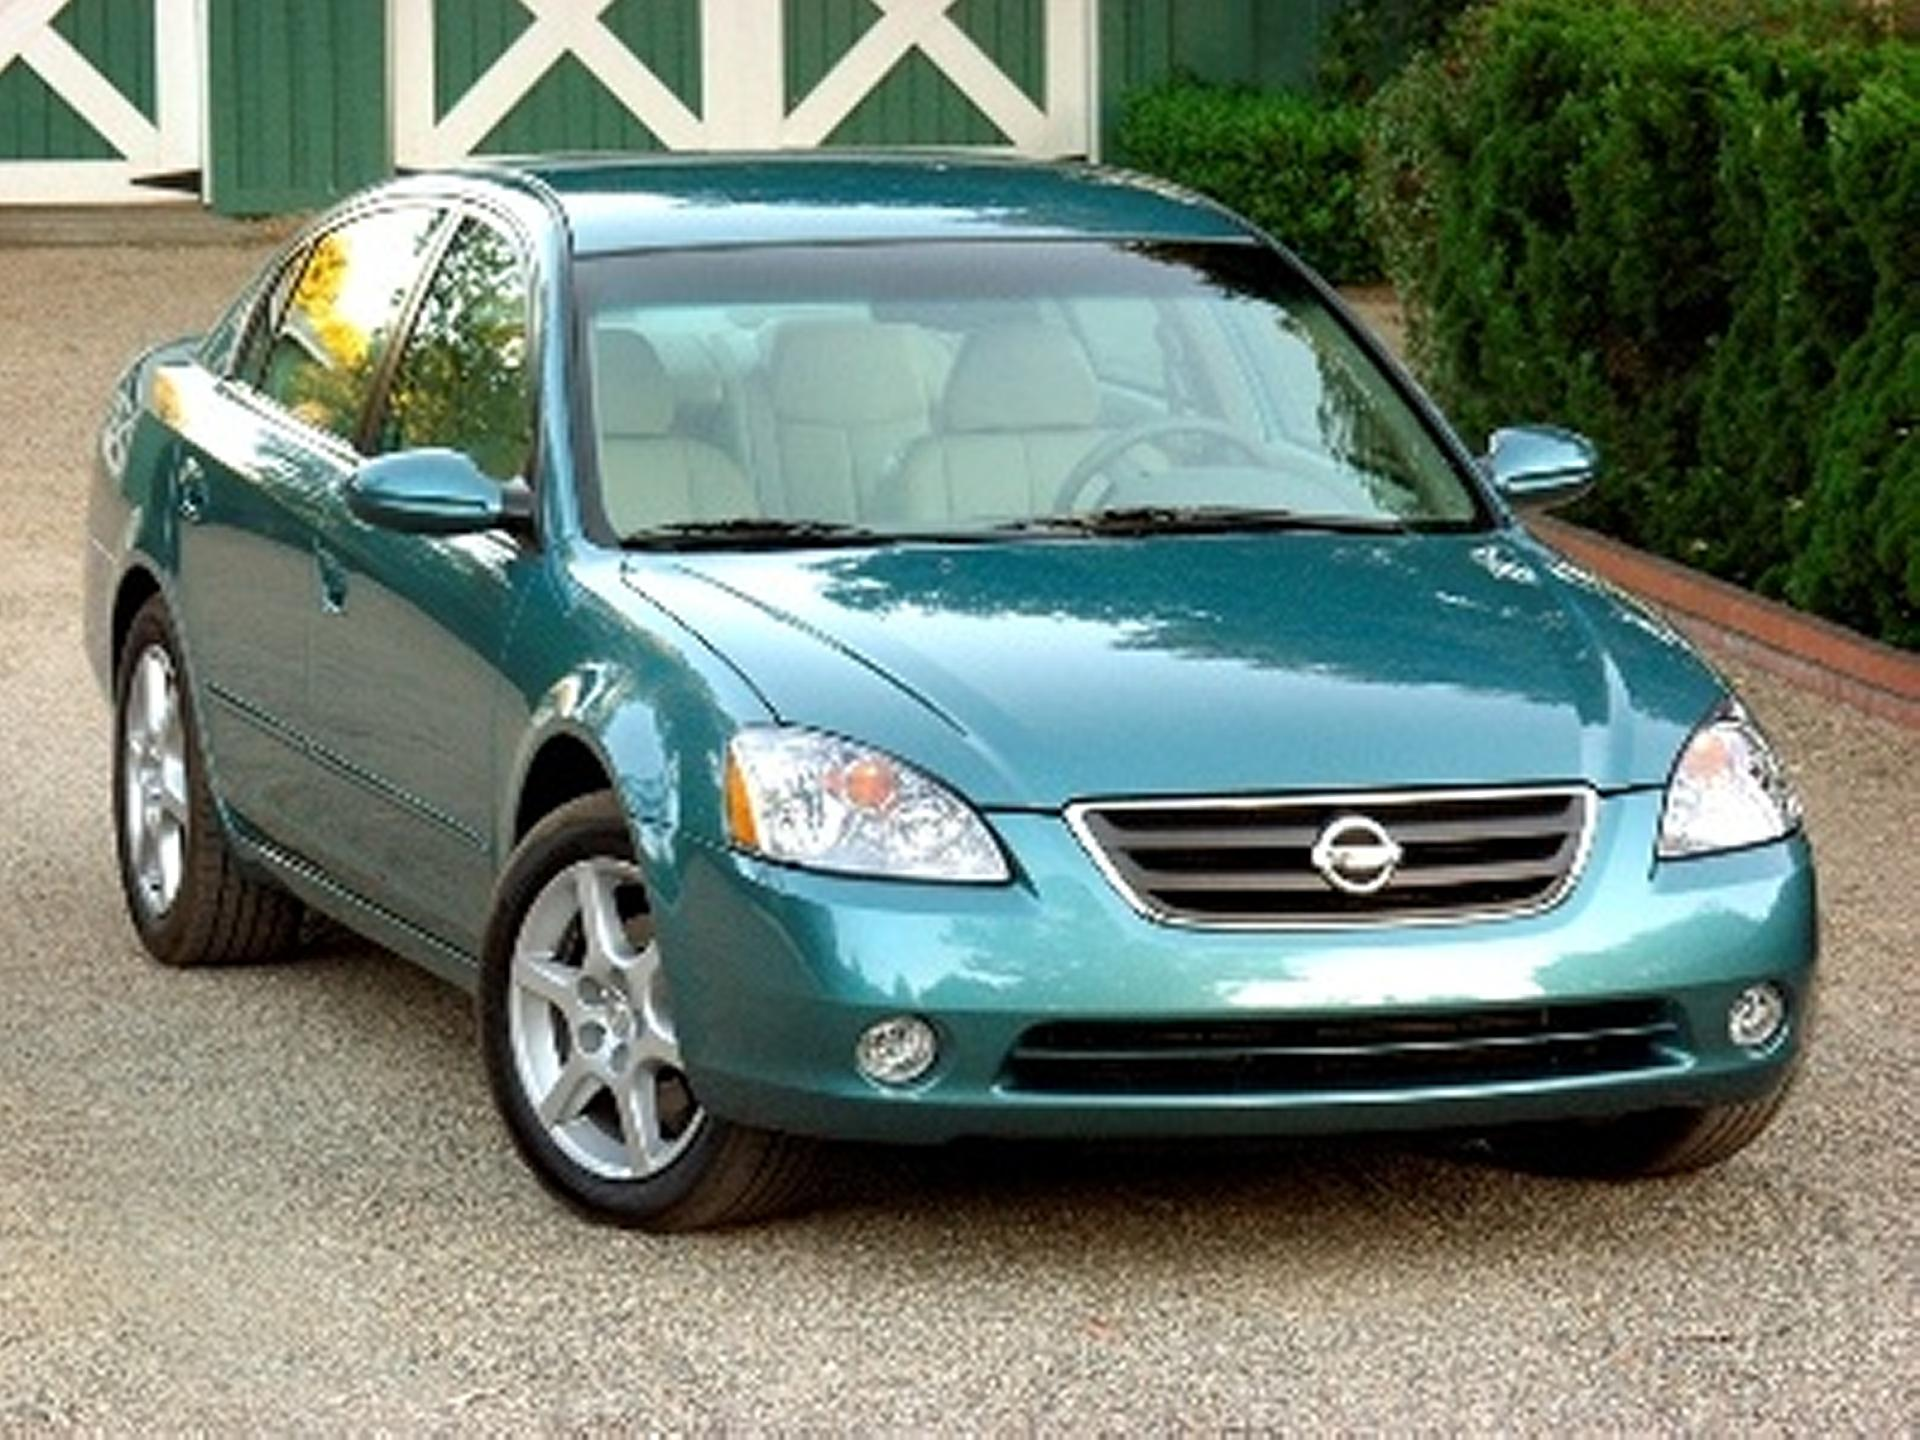 Nissan_altima_2002_original